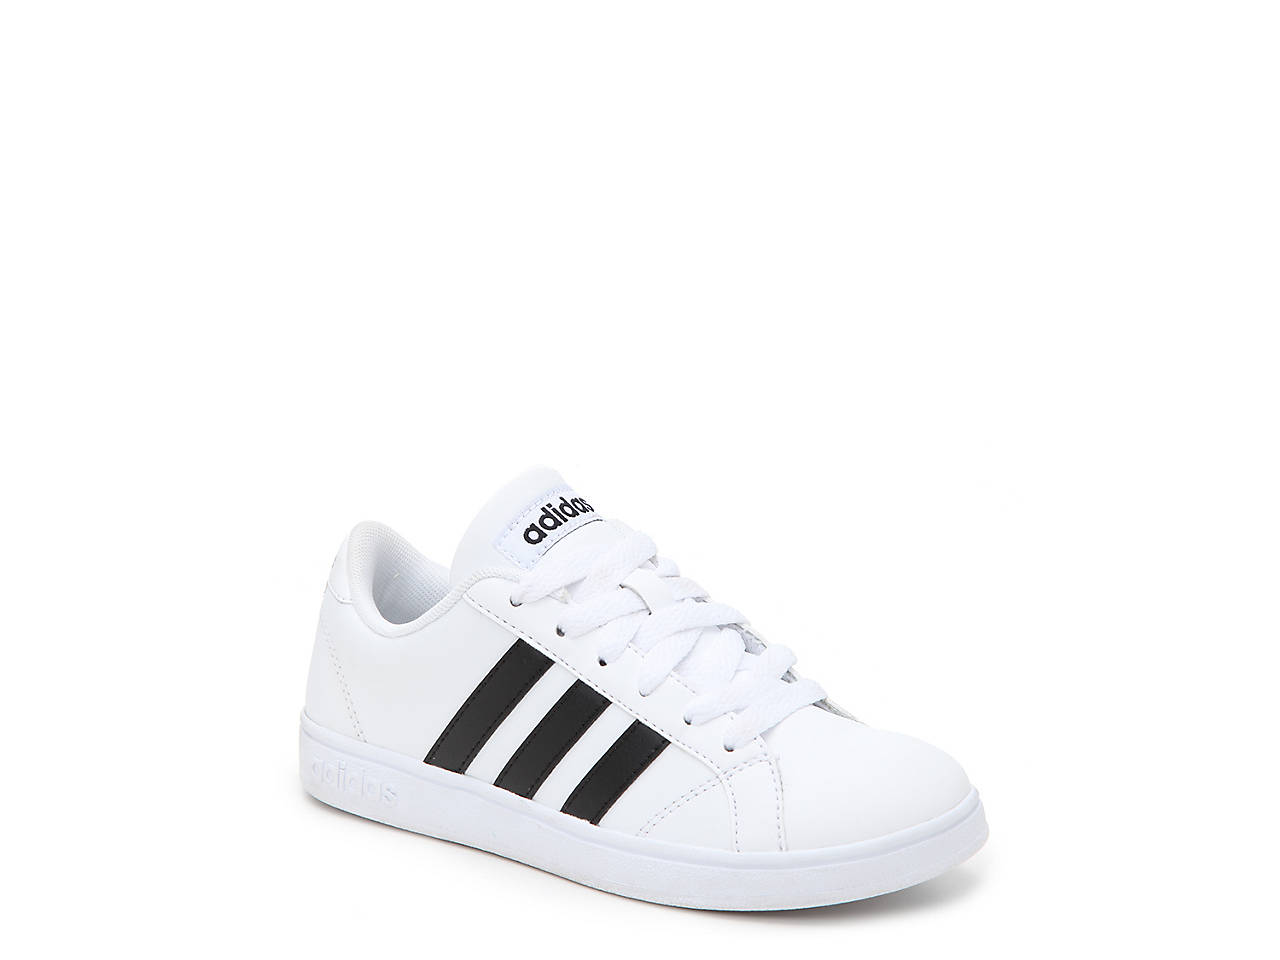 465019afbb9d adidas Baseline Toddler   Youth Sneaker Kids Shoes